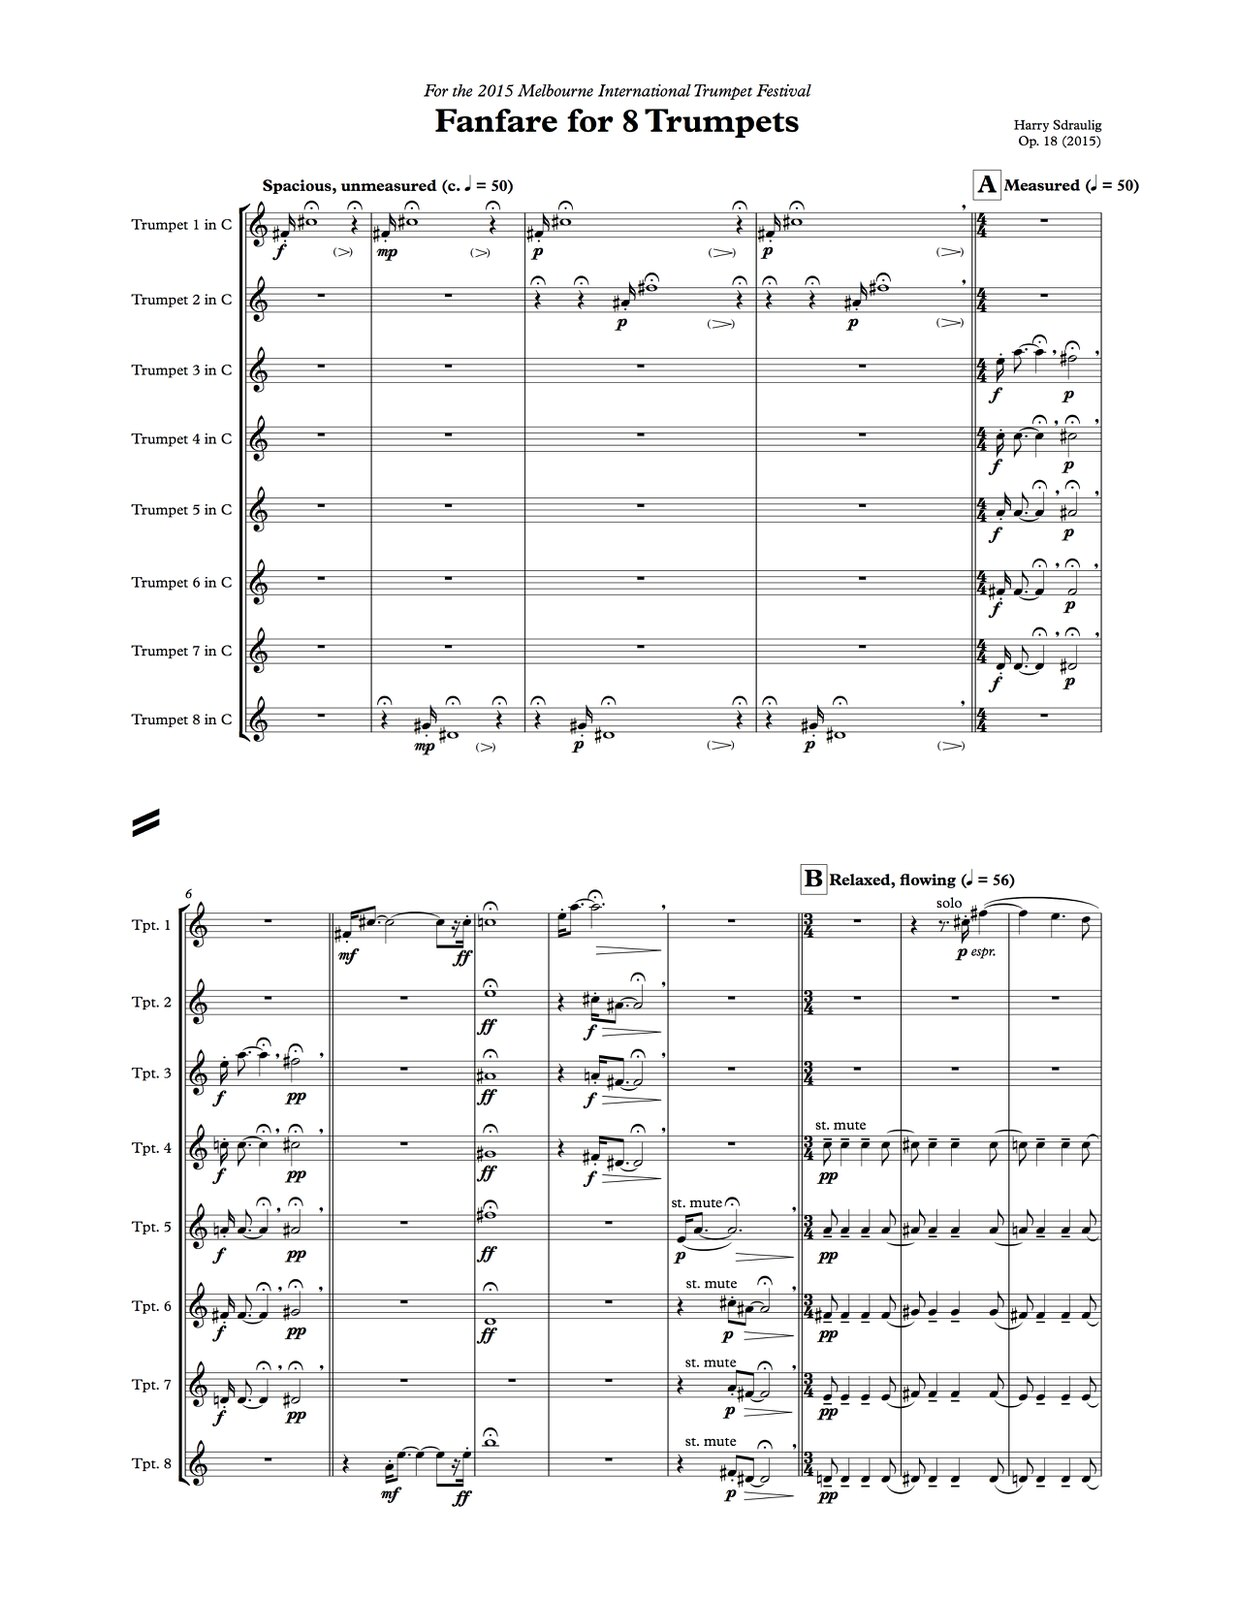 Harry Sdraulig, Fanfare for 8 Trumpets-p04